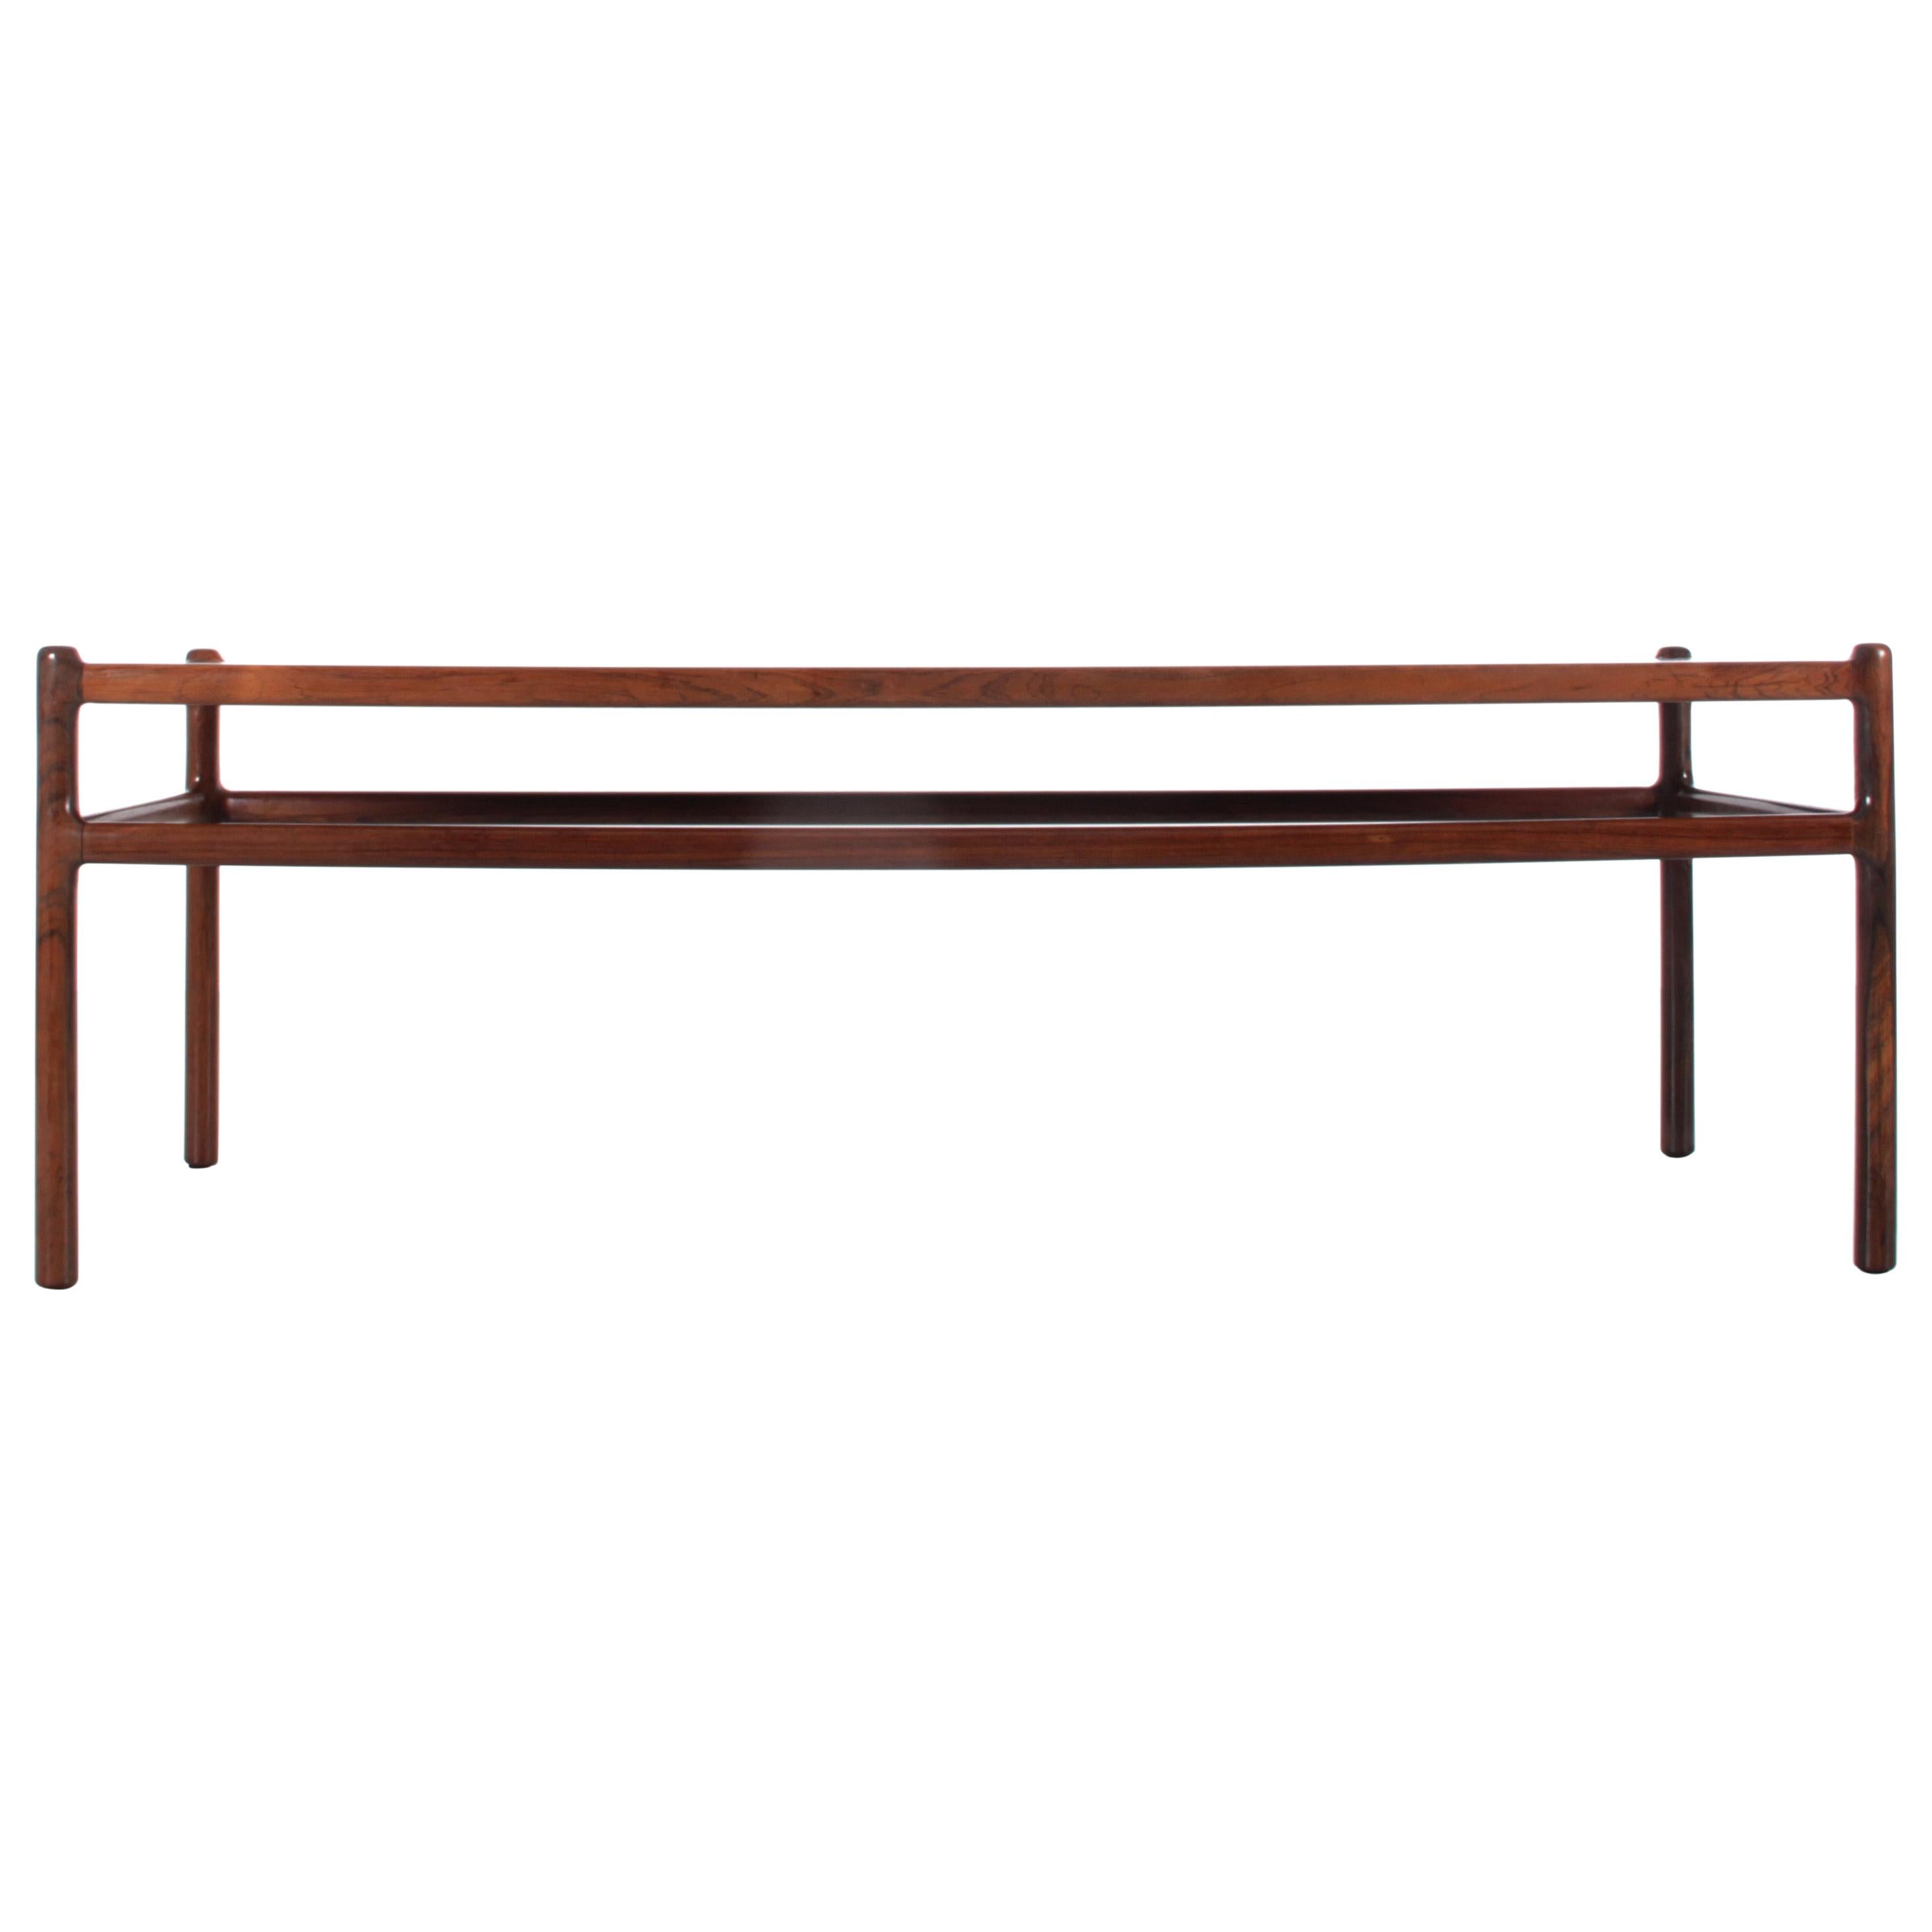 Mid-Century Modern Scandinavian Coffee Table in Rosewood by Henning Korch